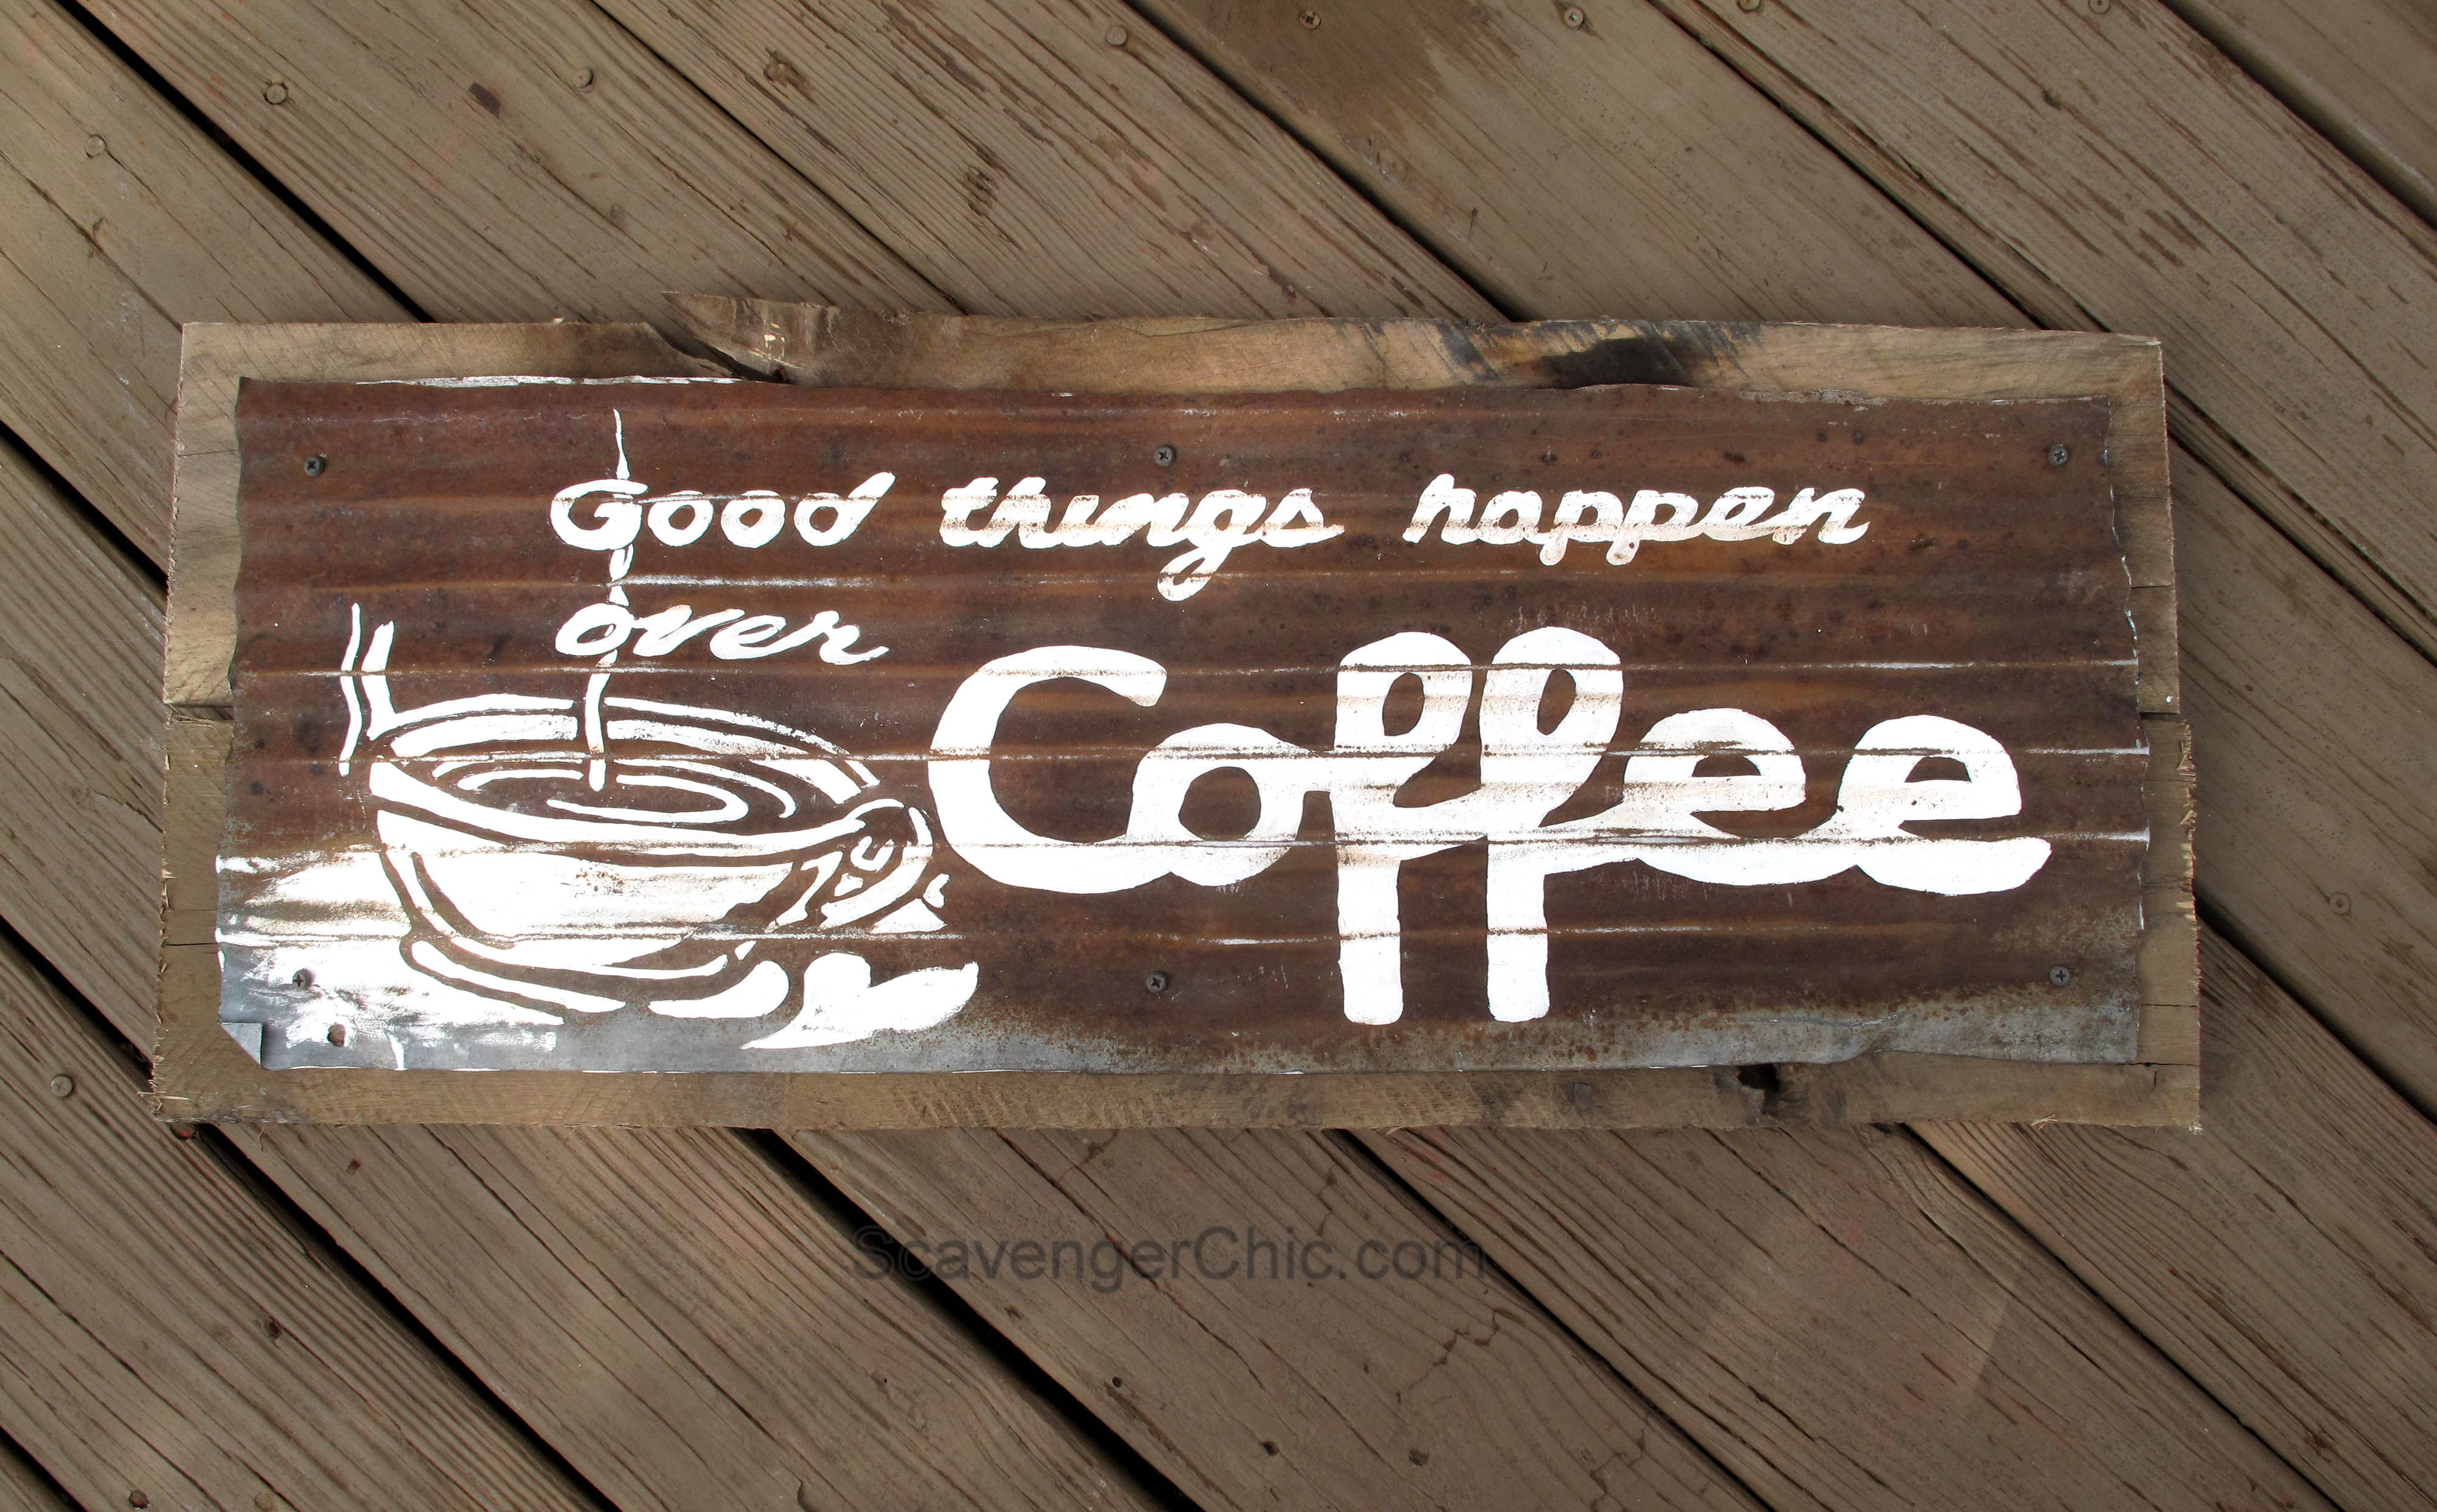 good things happen over coffee scavenger chic